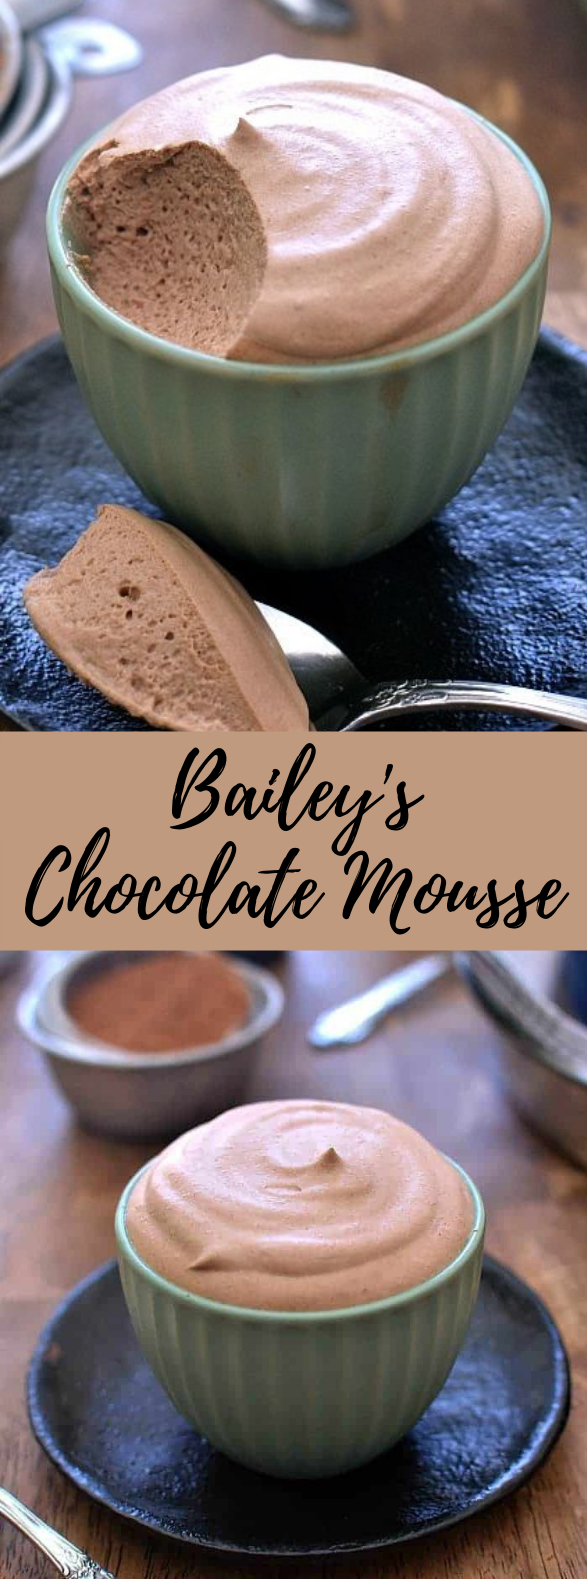 Bailey's Chocolate Mousse #Dessert #SimpleRecipe